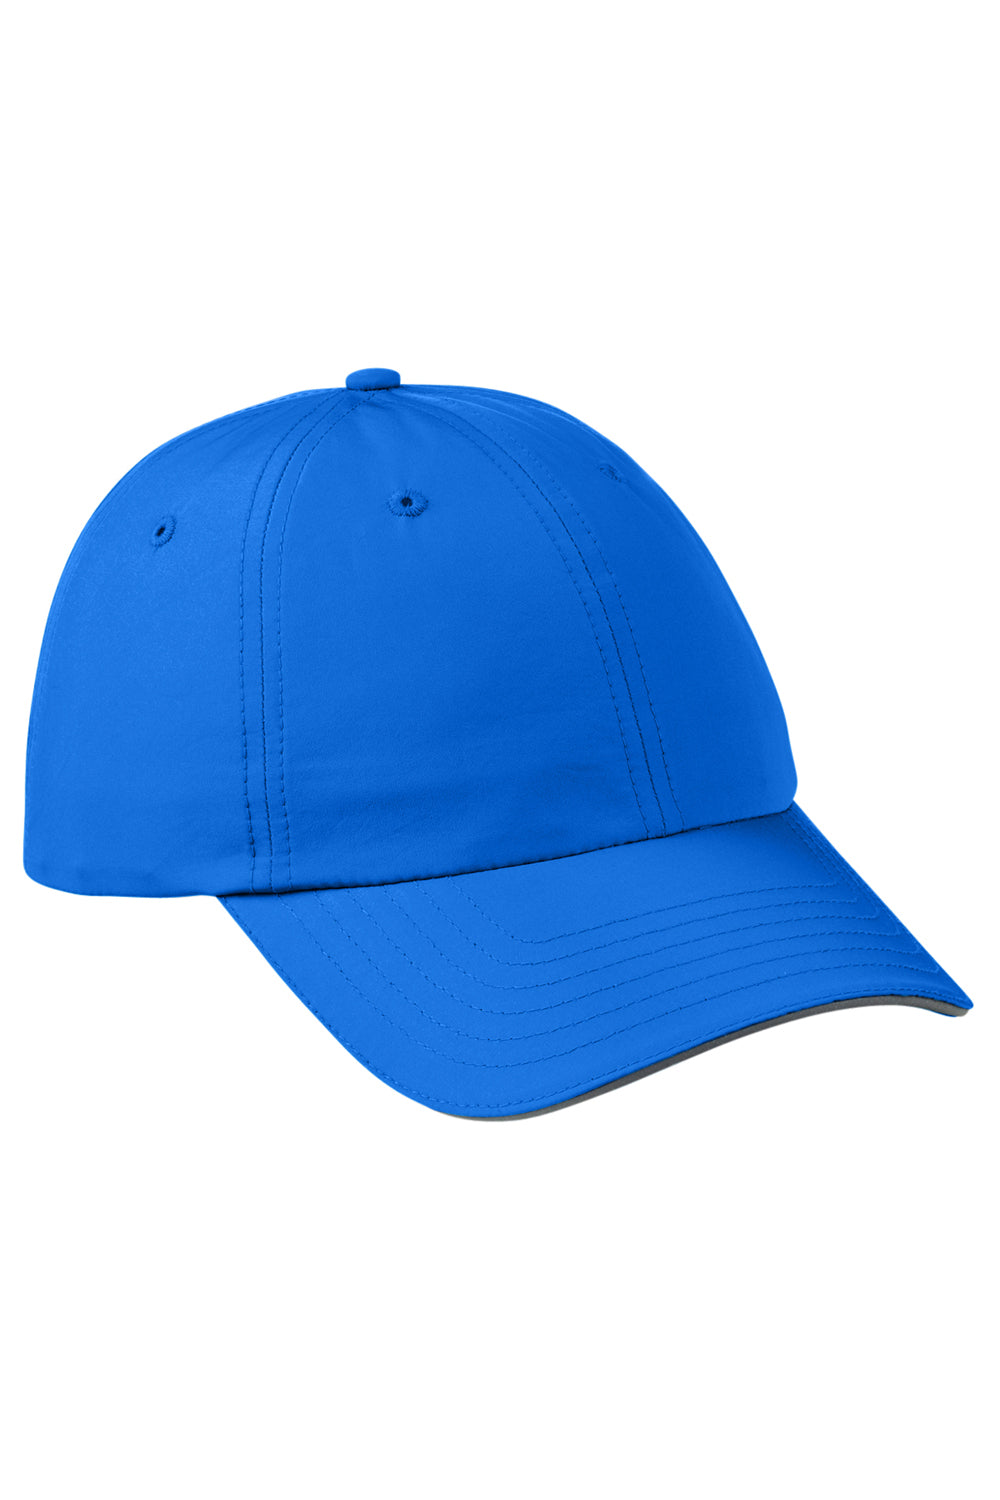 Core 365 CE001 Mens Pitch Performance Moisture Wicking Adjustable Hat Royal Blue Front